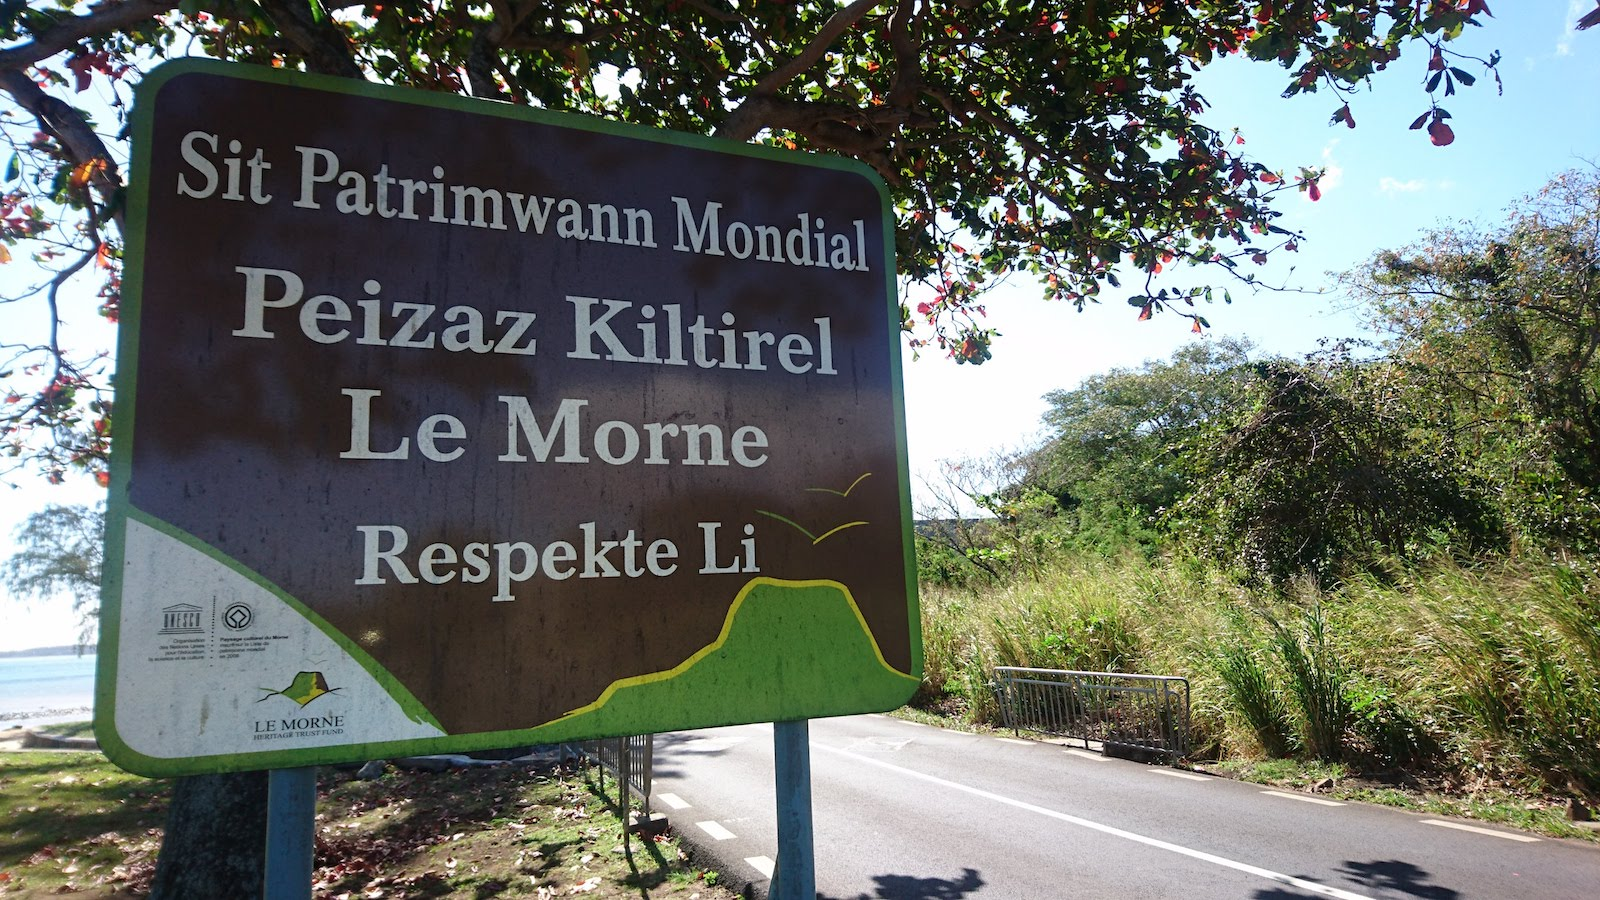 A sign post written in Mauritian Creole